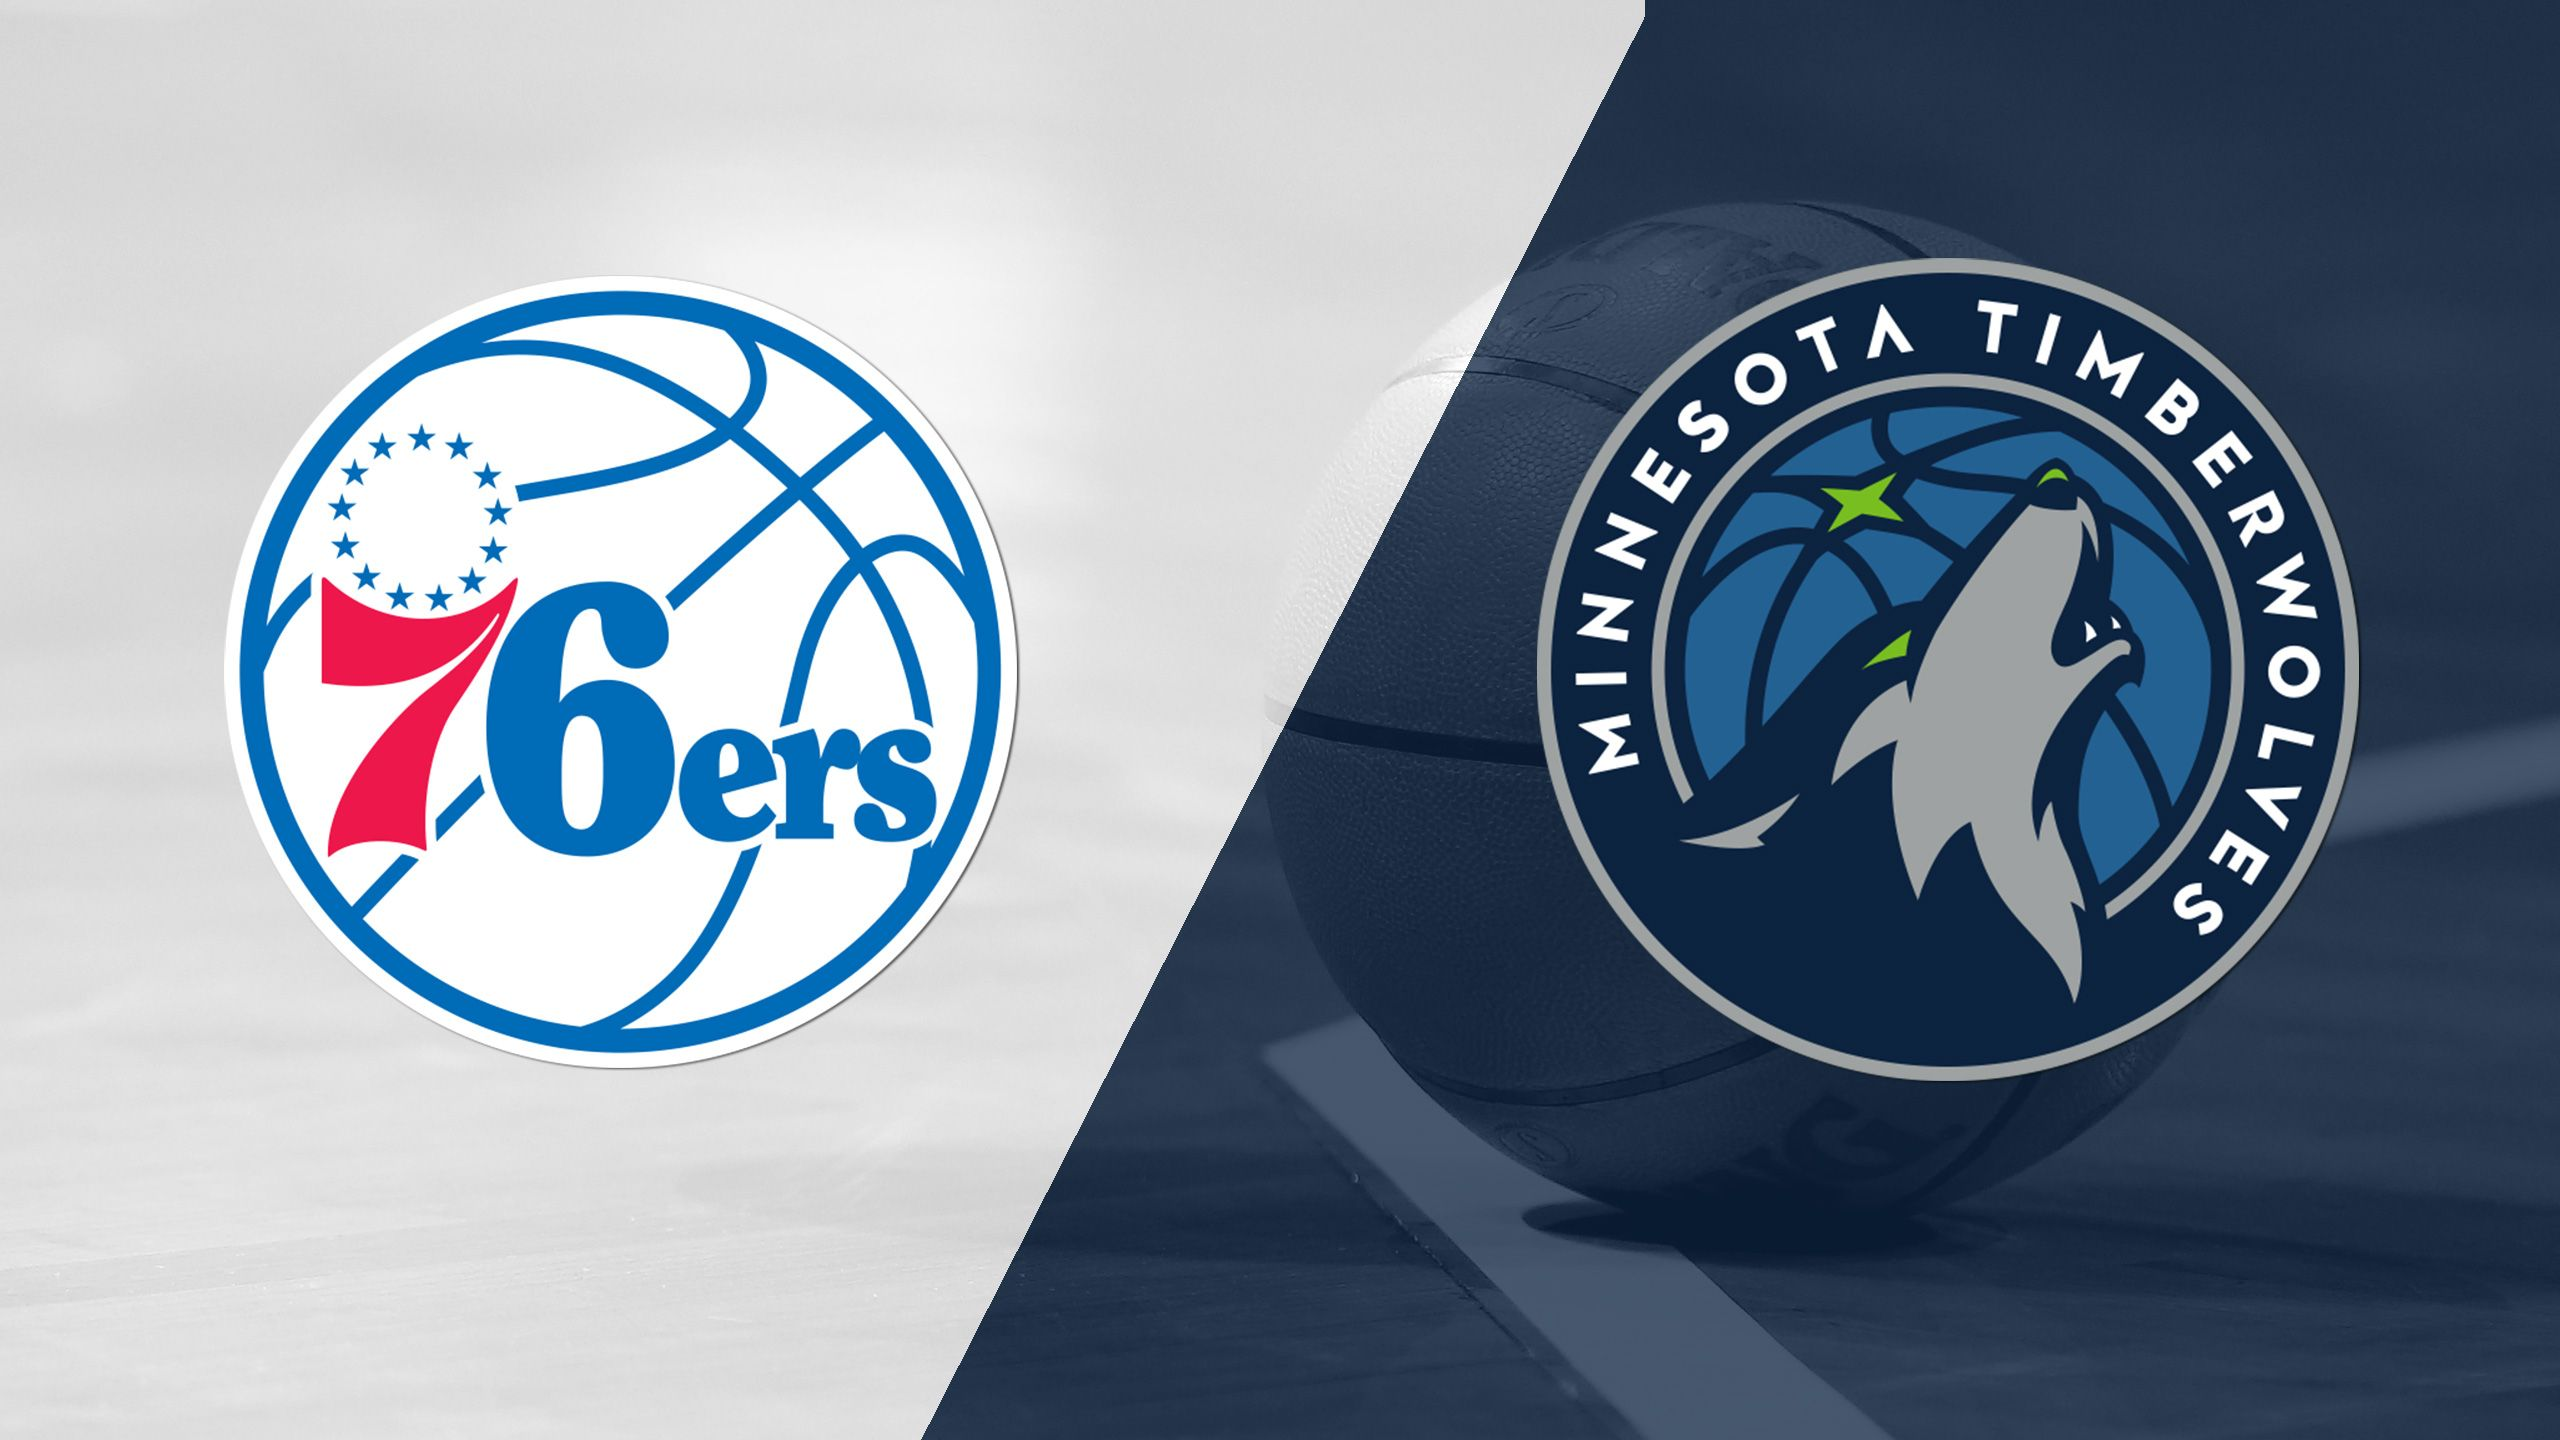 In Spanish - Philadelphia 76ers vs. Minnesota Timberwolves